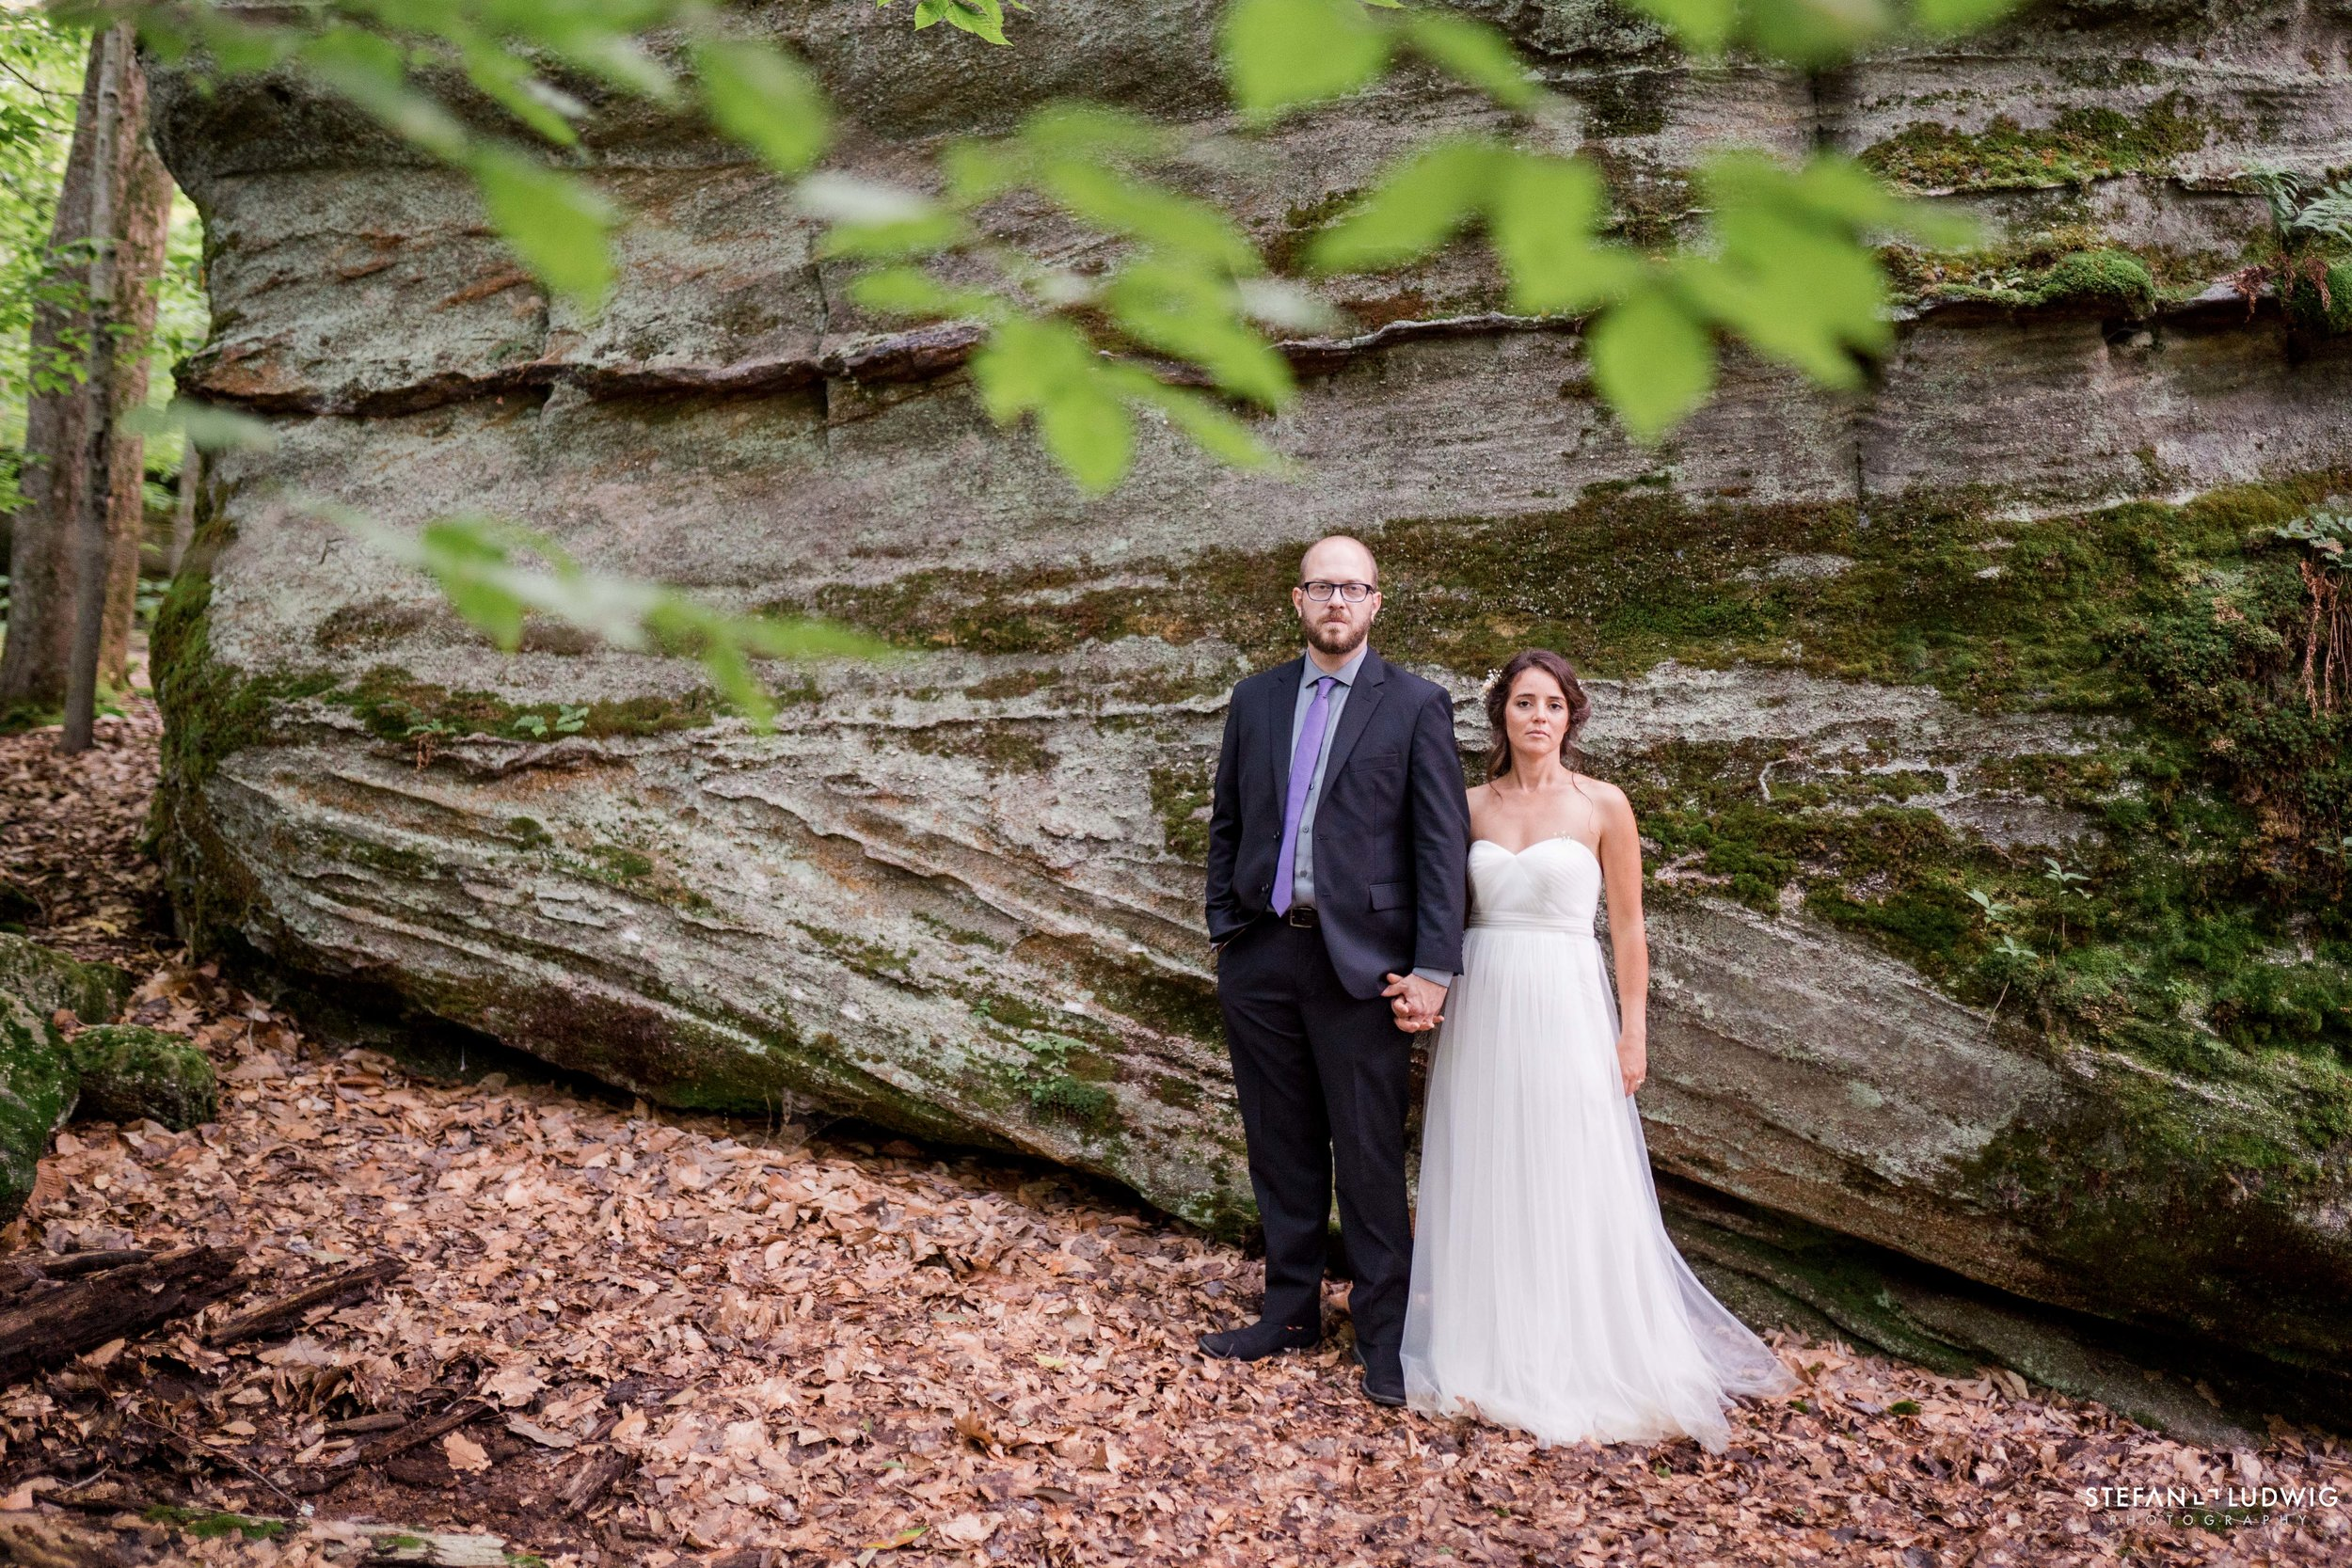 Blog Wedding Photography Mariana and John in Ellicottville NY by Stefan Ludwig Photography-55.jpg